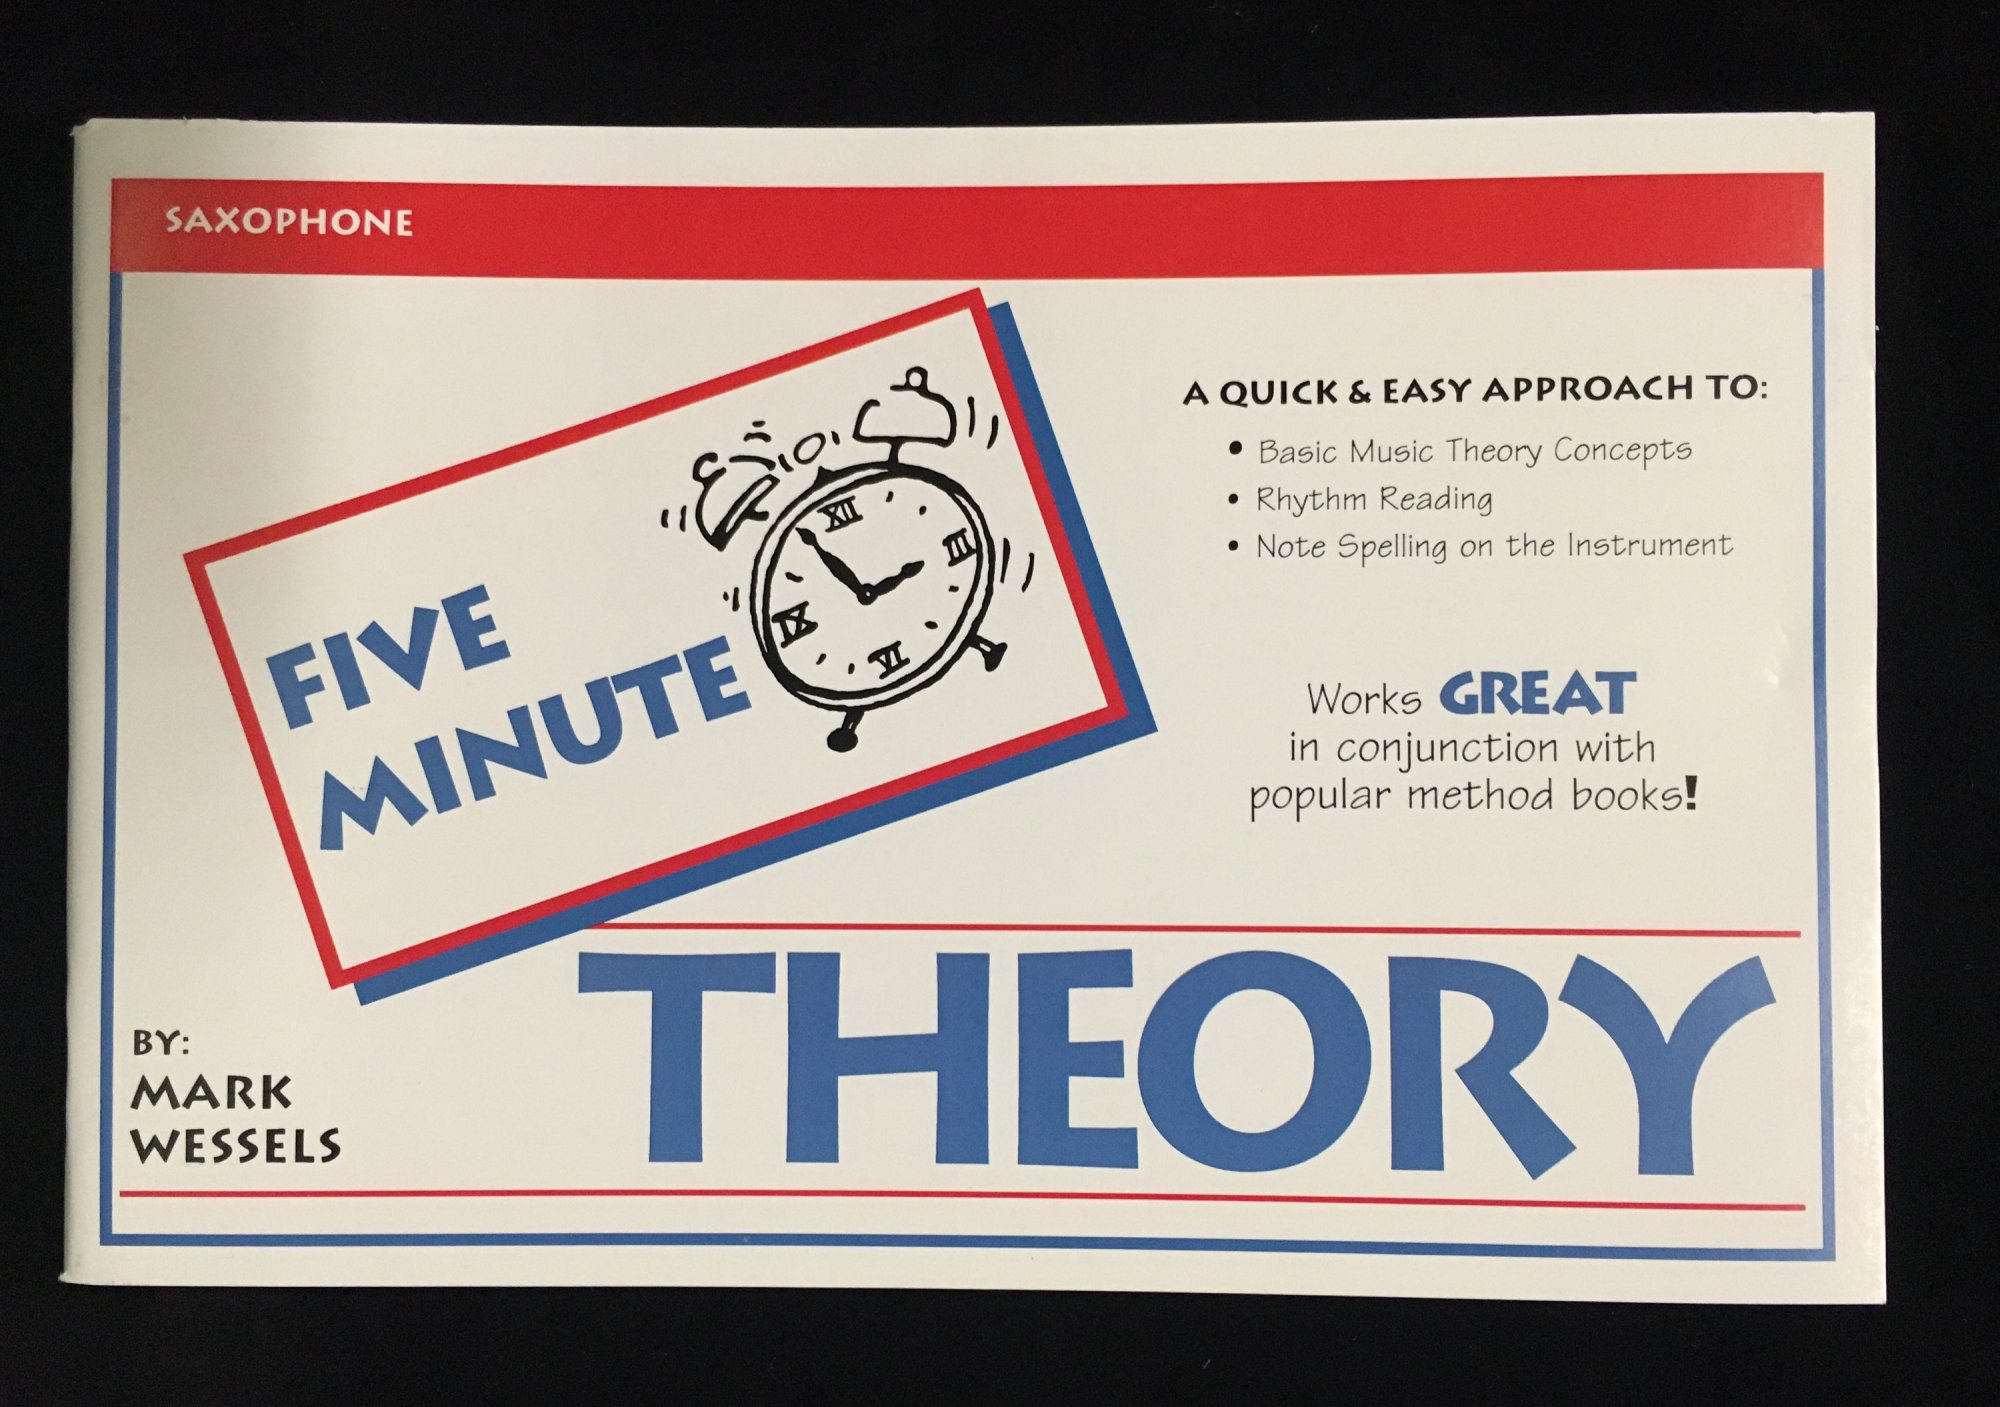 Five Minute Theory - Saxophone, Book 1 by Mark Wessels